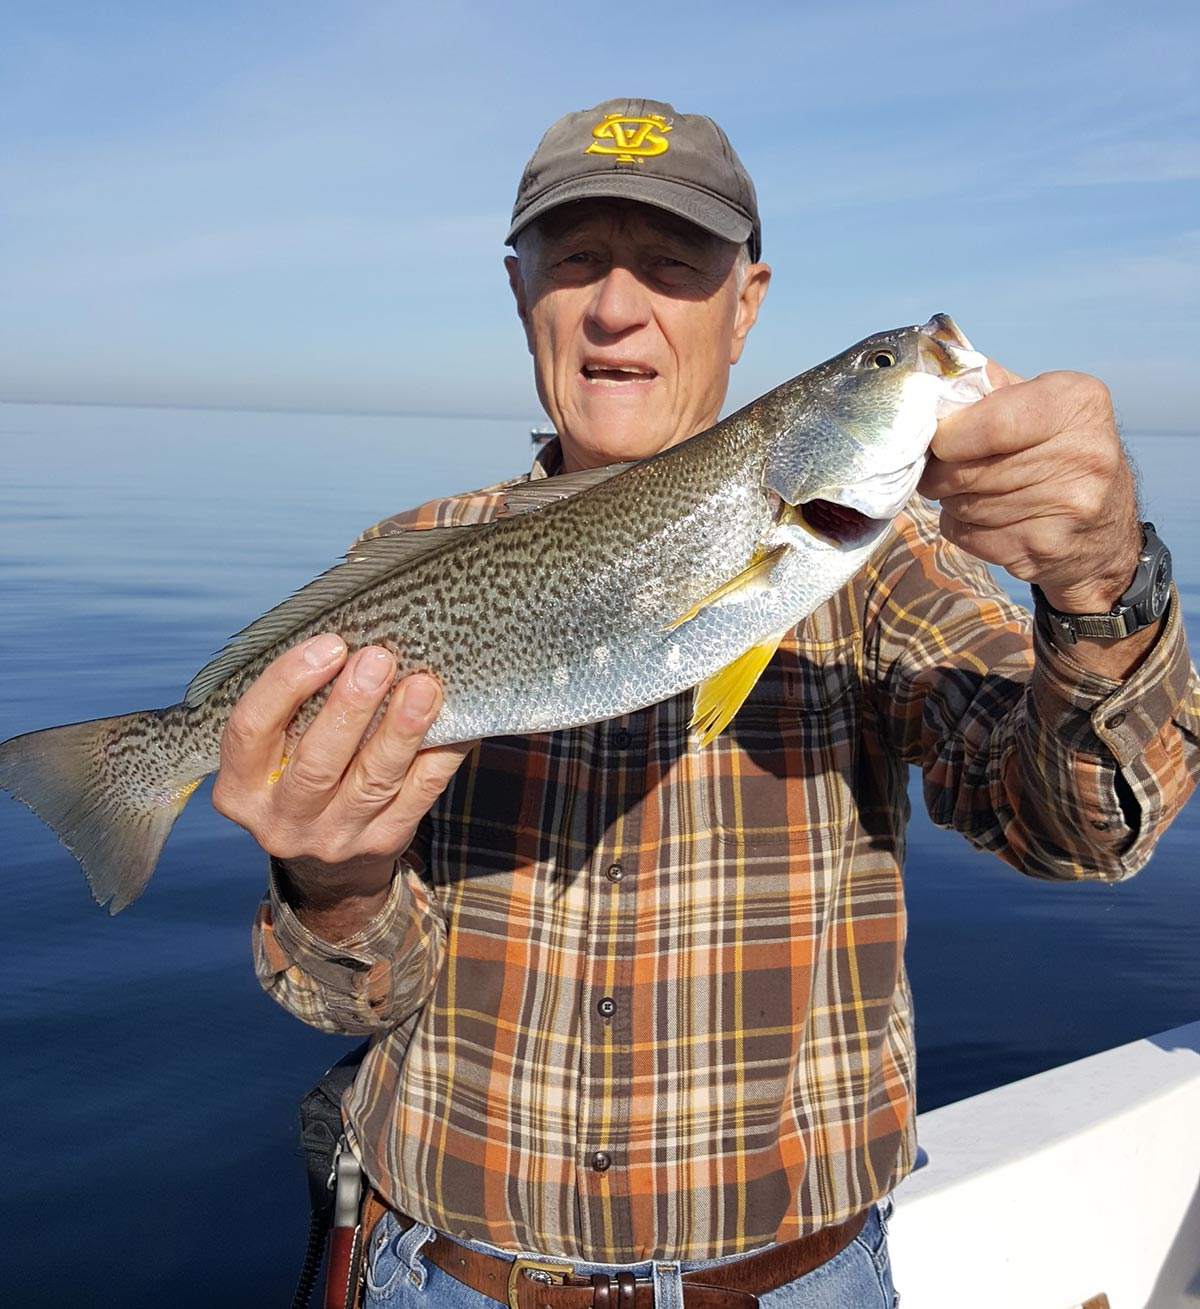 There are signs that weakfish are staging a comeback, and I caught this one while fishing for porgies in Smithtown Bay.